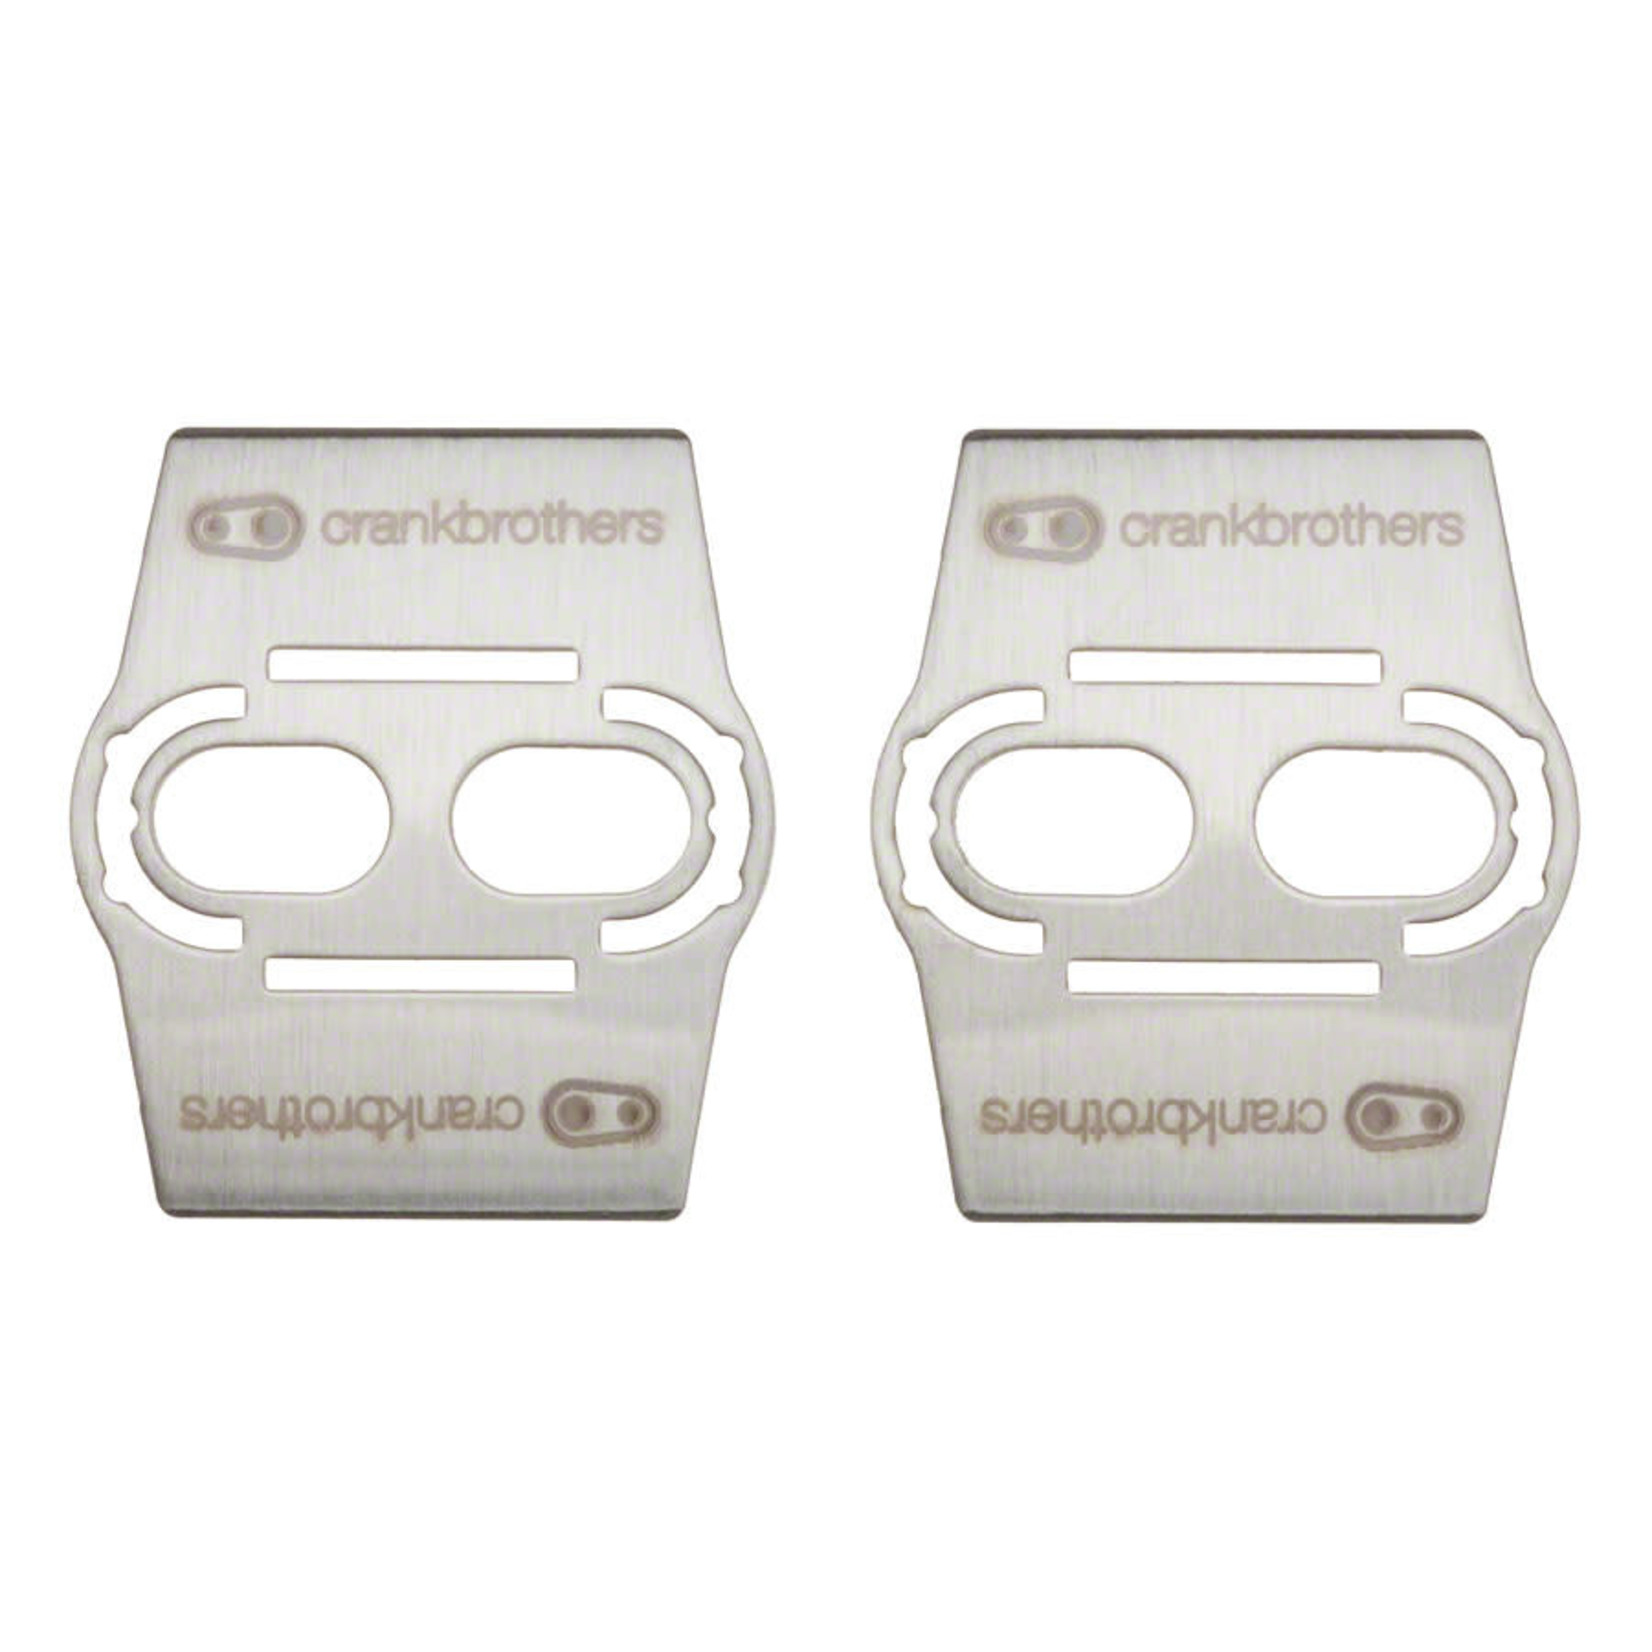 crankbrothers Crank Brothers Shoe Shields